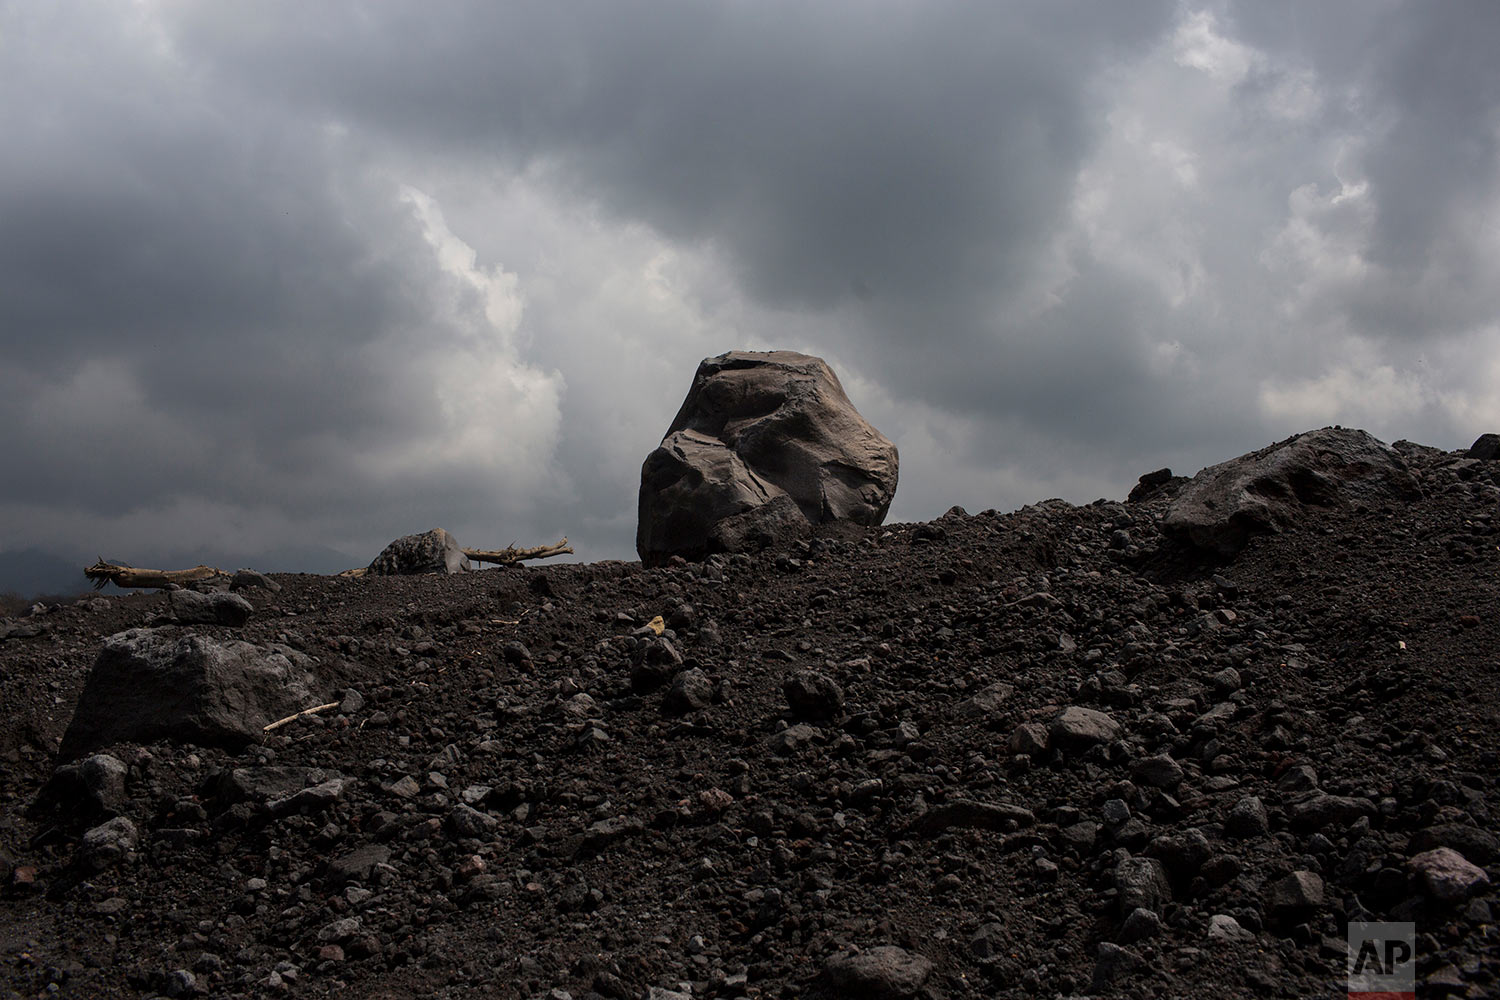 In this June 19, 2018 photo, a boulder stands on the slopes of the Volcano of Fire along its path of destruction in the aftermath of its eruption in San Miguel Los Lotes, Guatemala. (AP Photo/Rodrigo Abd)